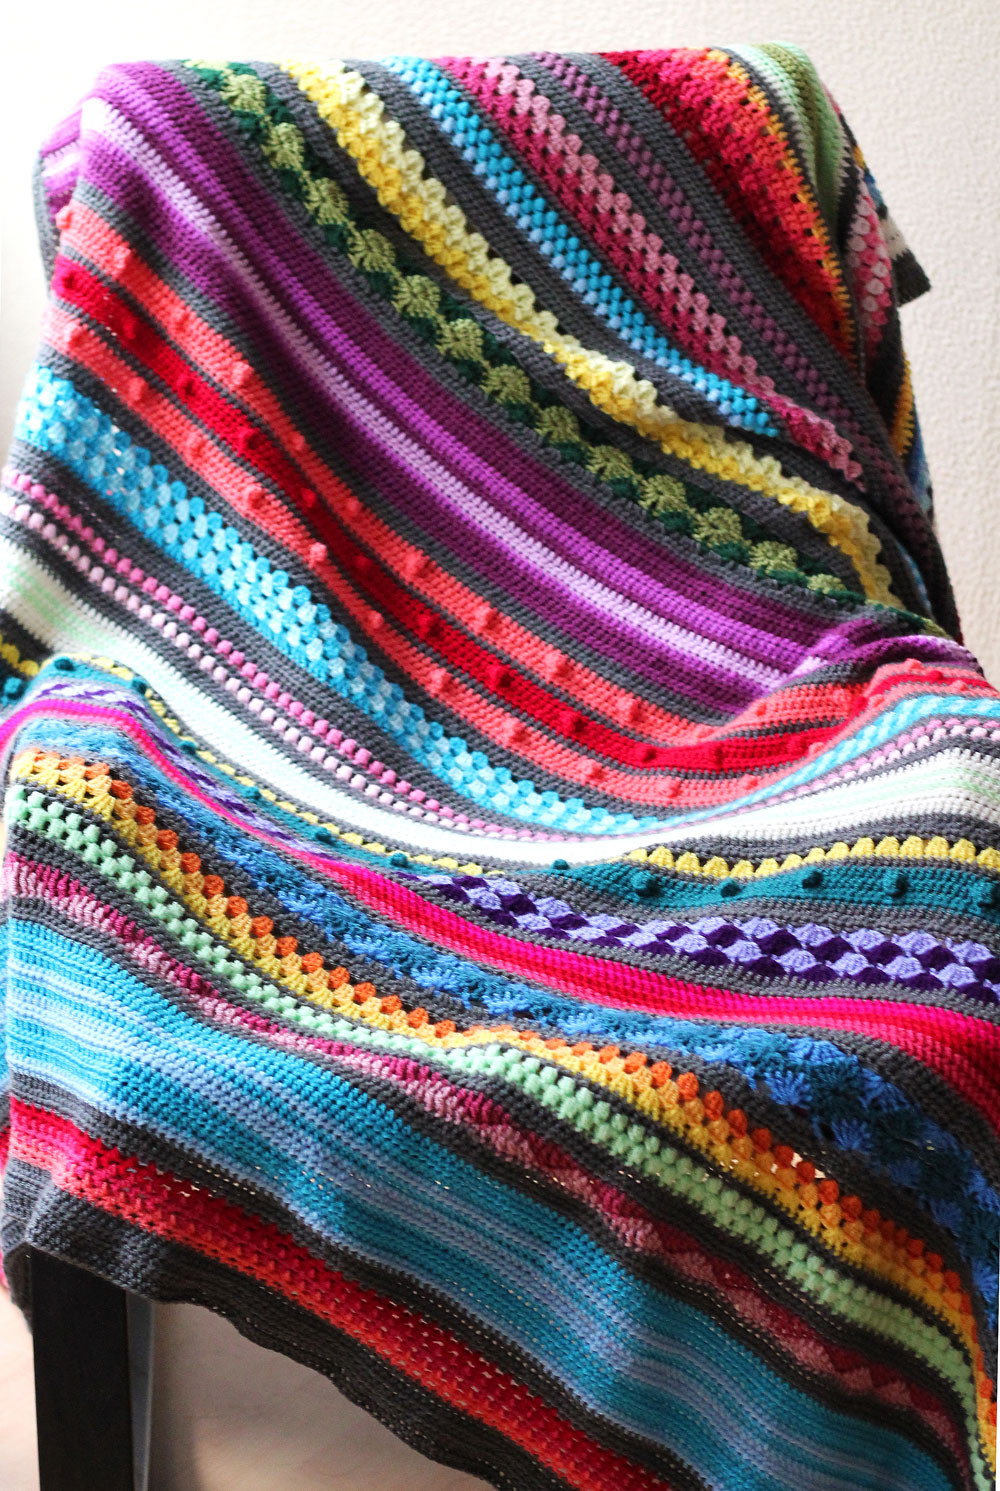 Crochet Stitches for Blankets Awesome Free Crochet Pattern Rainbow Sampler Blanket Of New 42 Images Crochet Stitches for Blankets